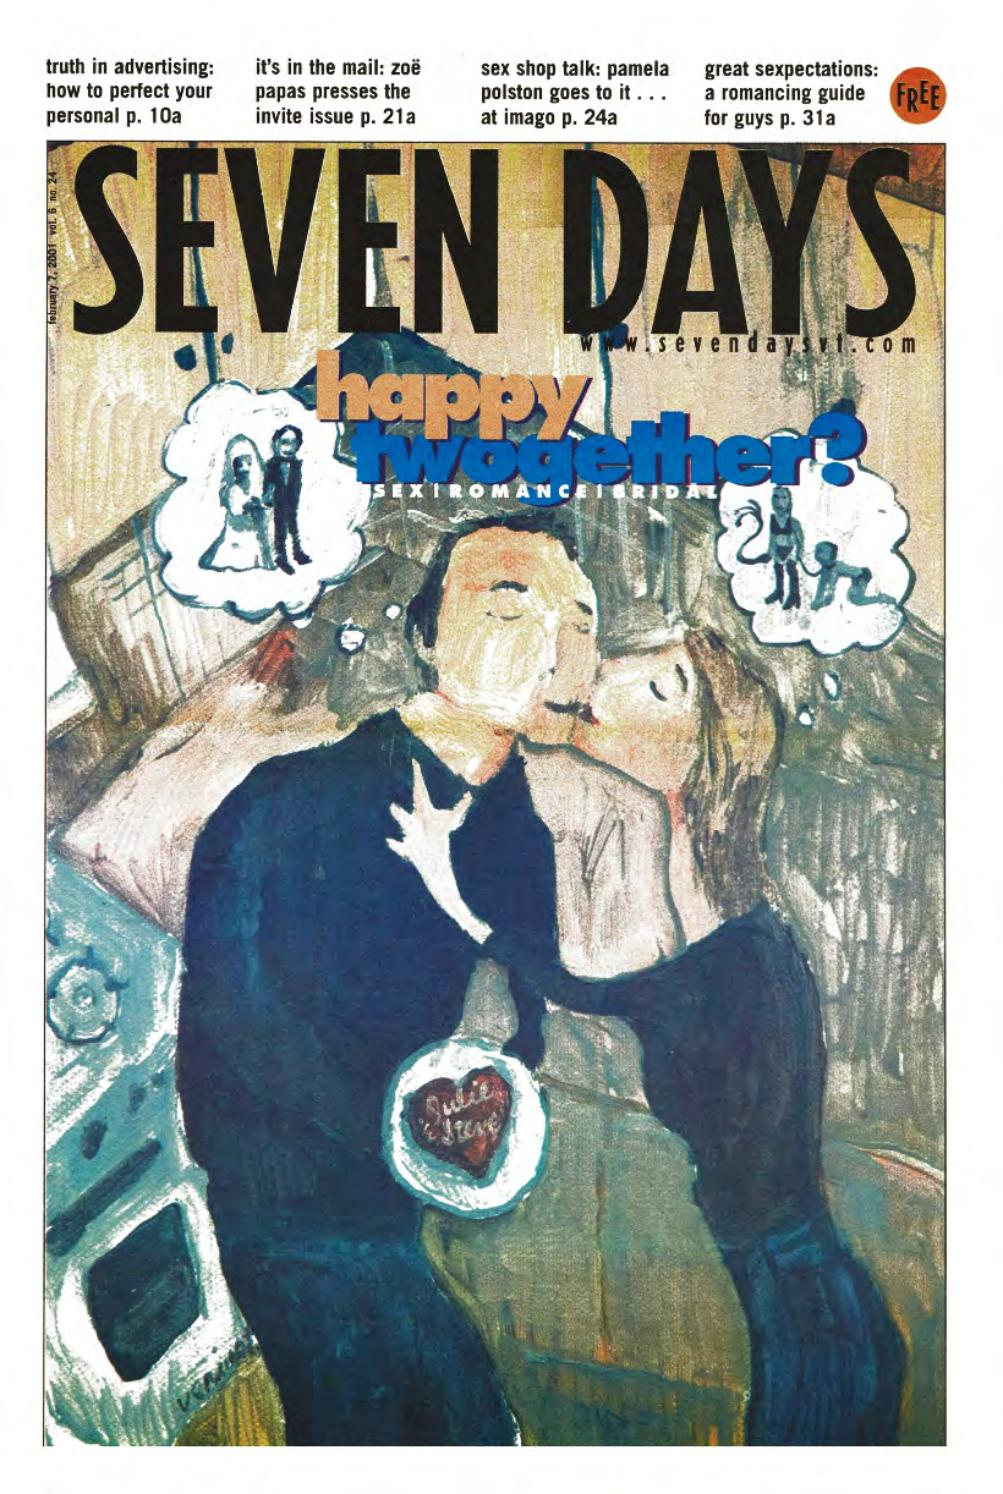 Seven days, may 1, 2002 by seven days   issuu